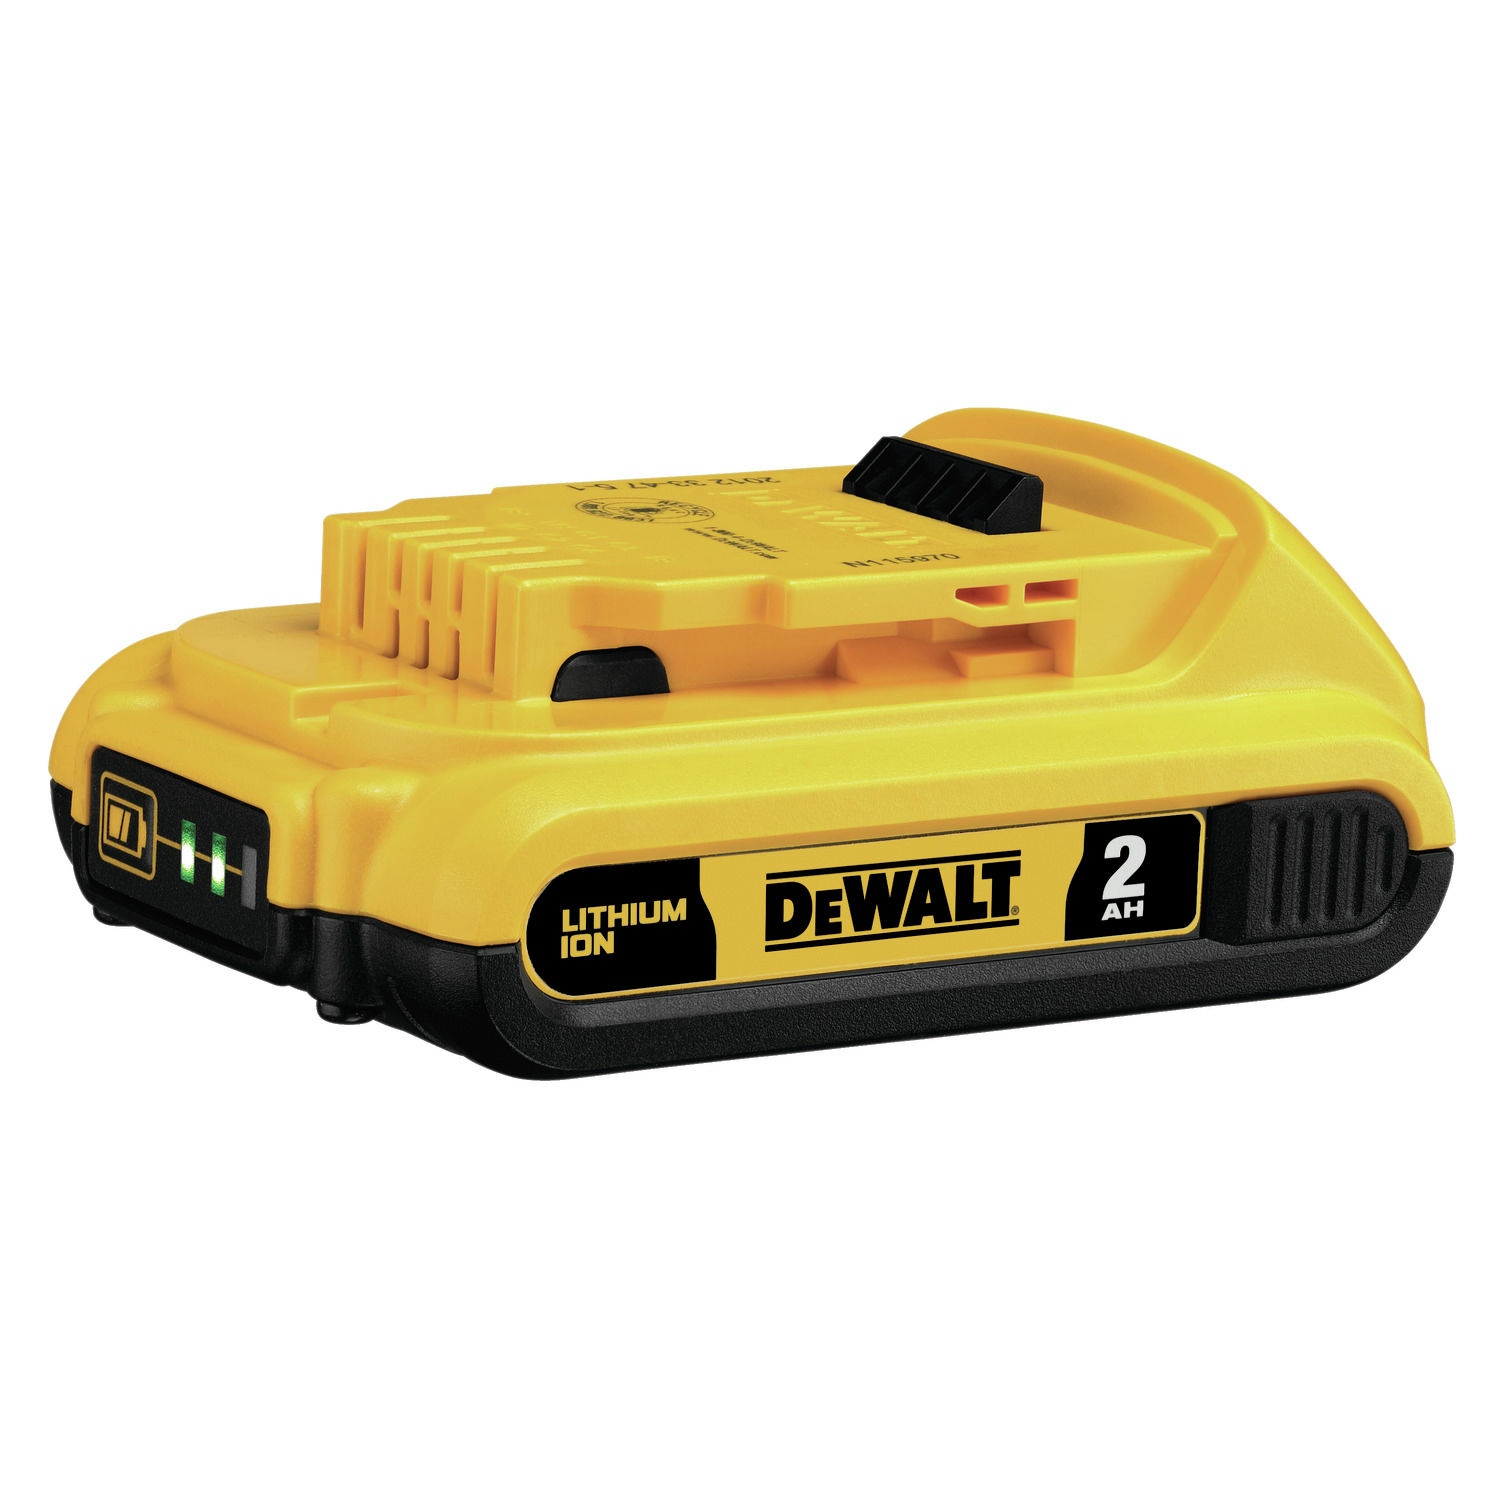 Dewalt DCB203 battery for lightweight usage